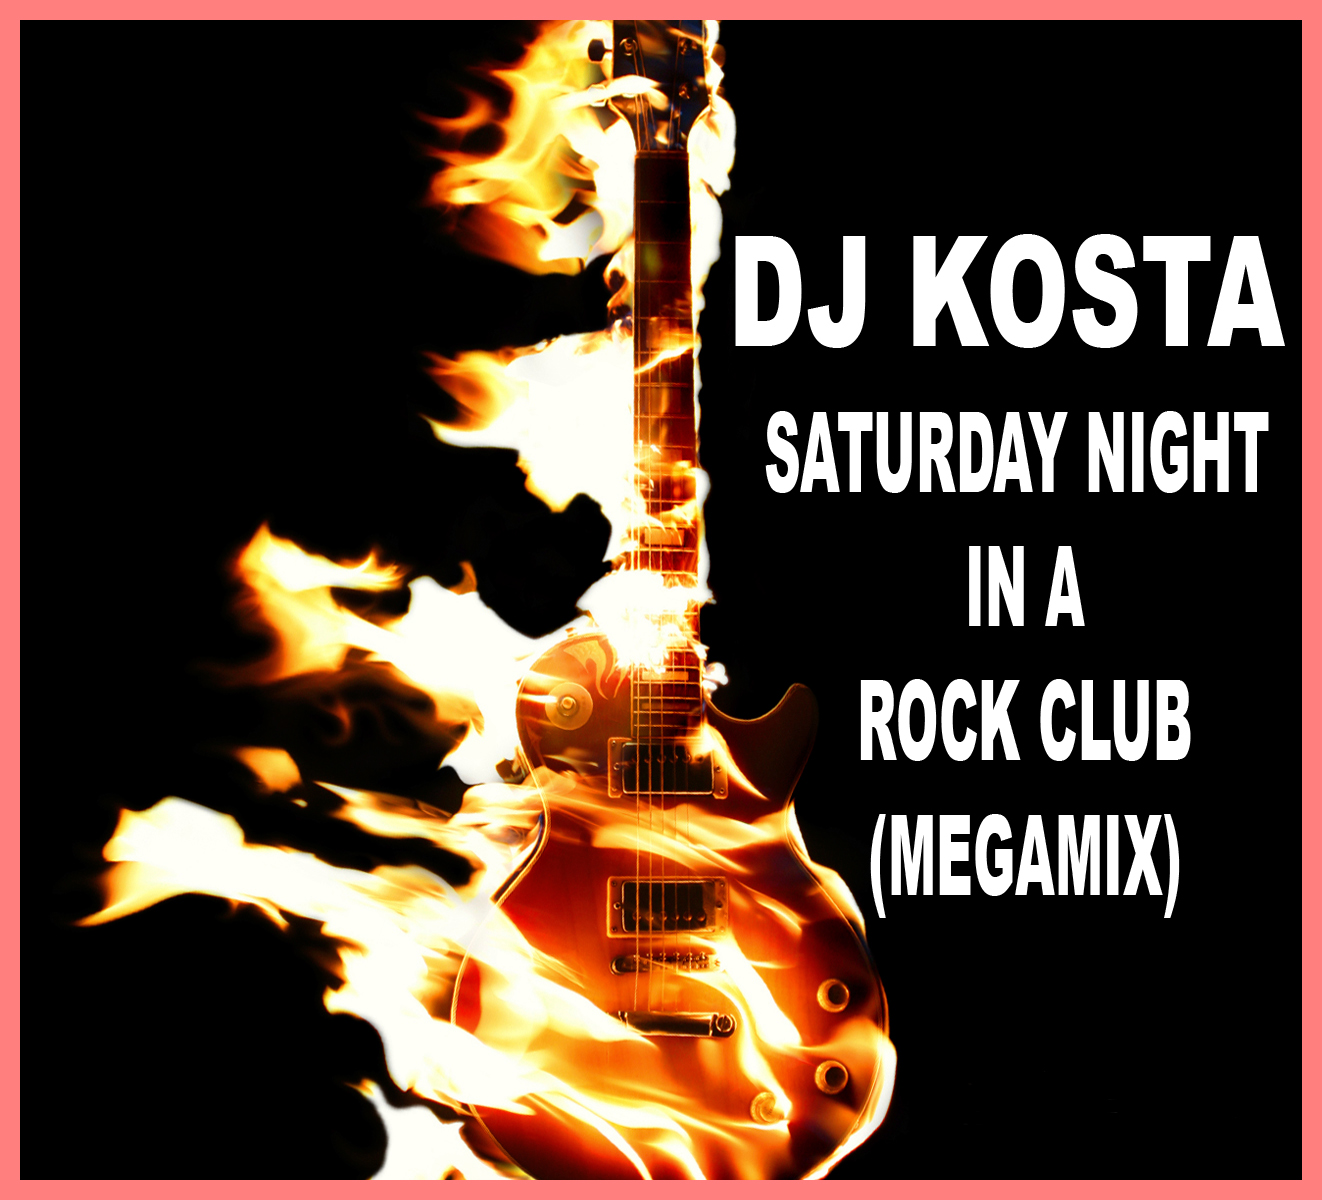 Download DJ Kosta - Saturday Night in a Rock Club Megamix 2010